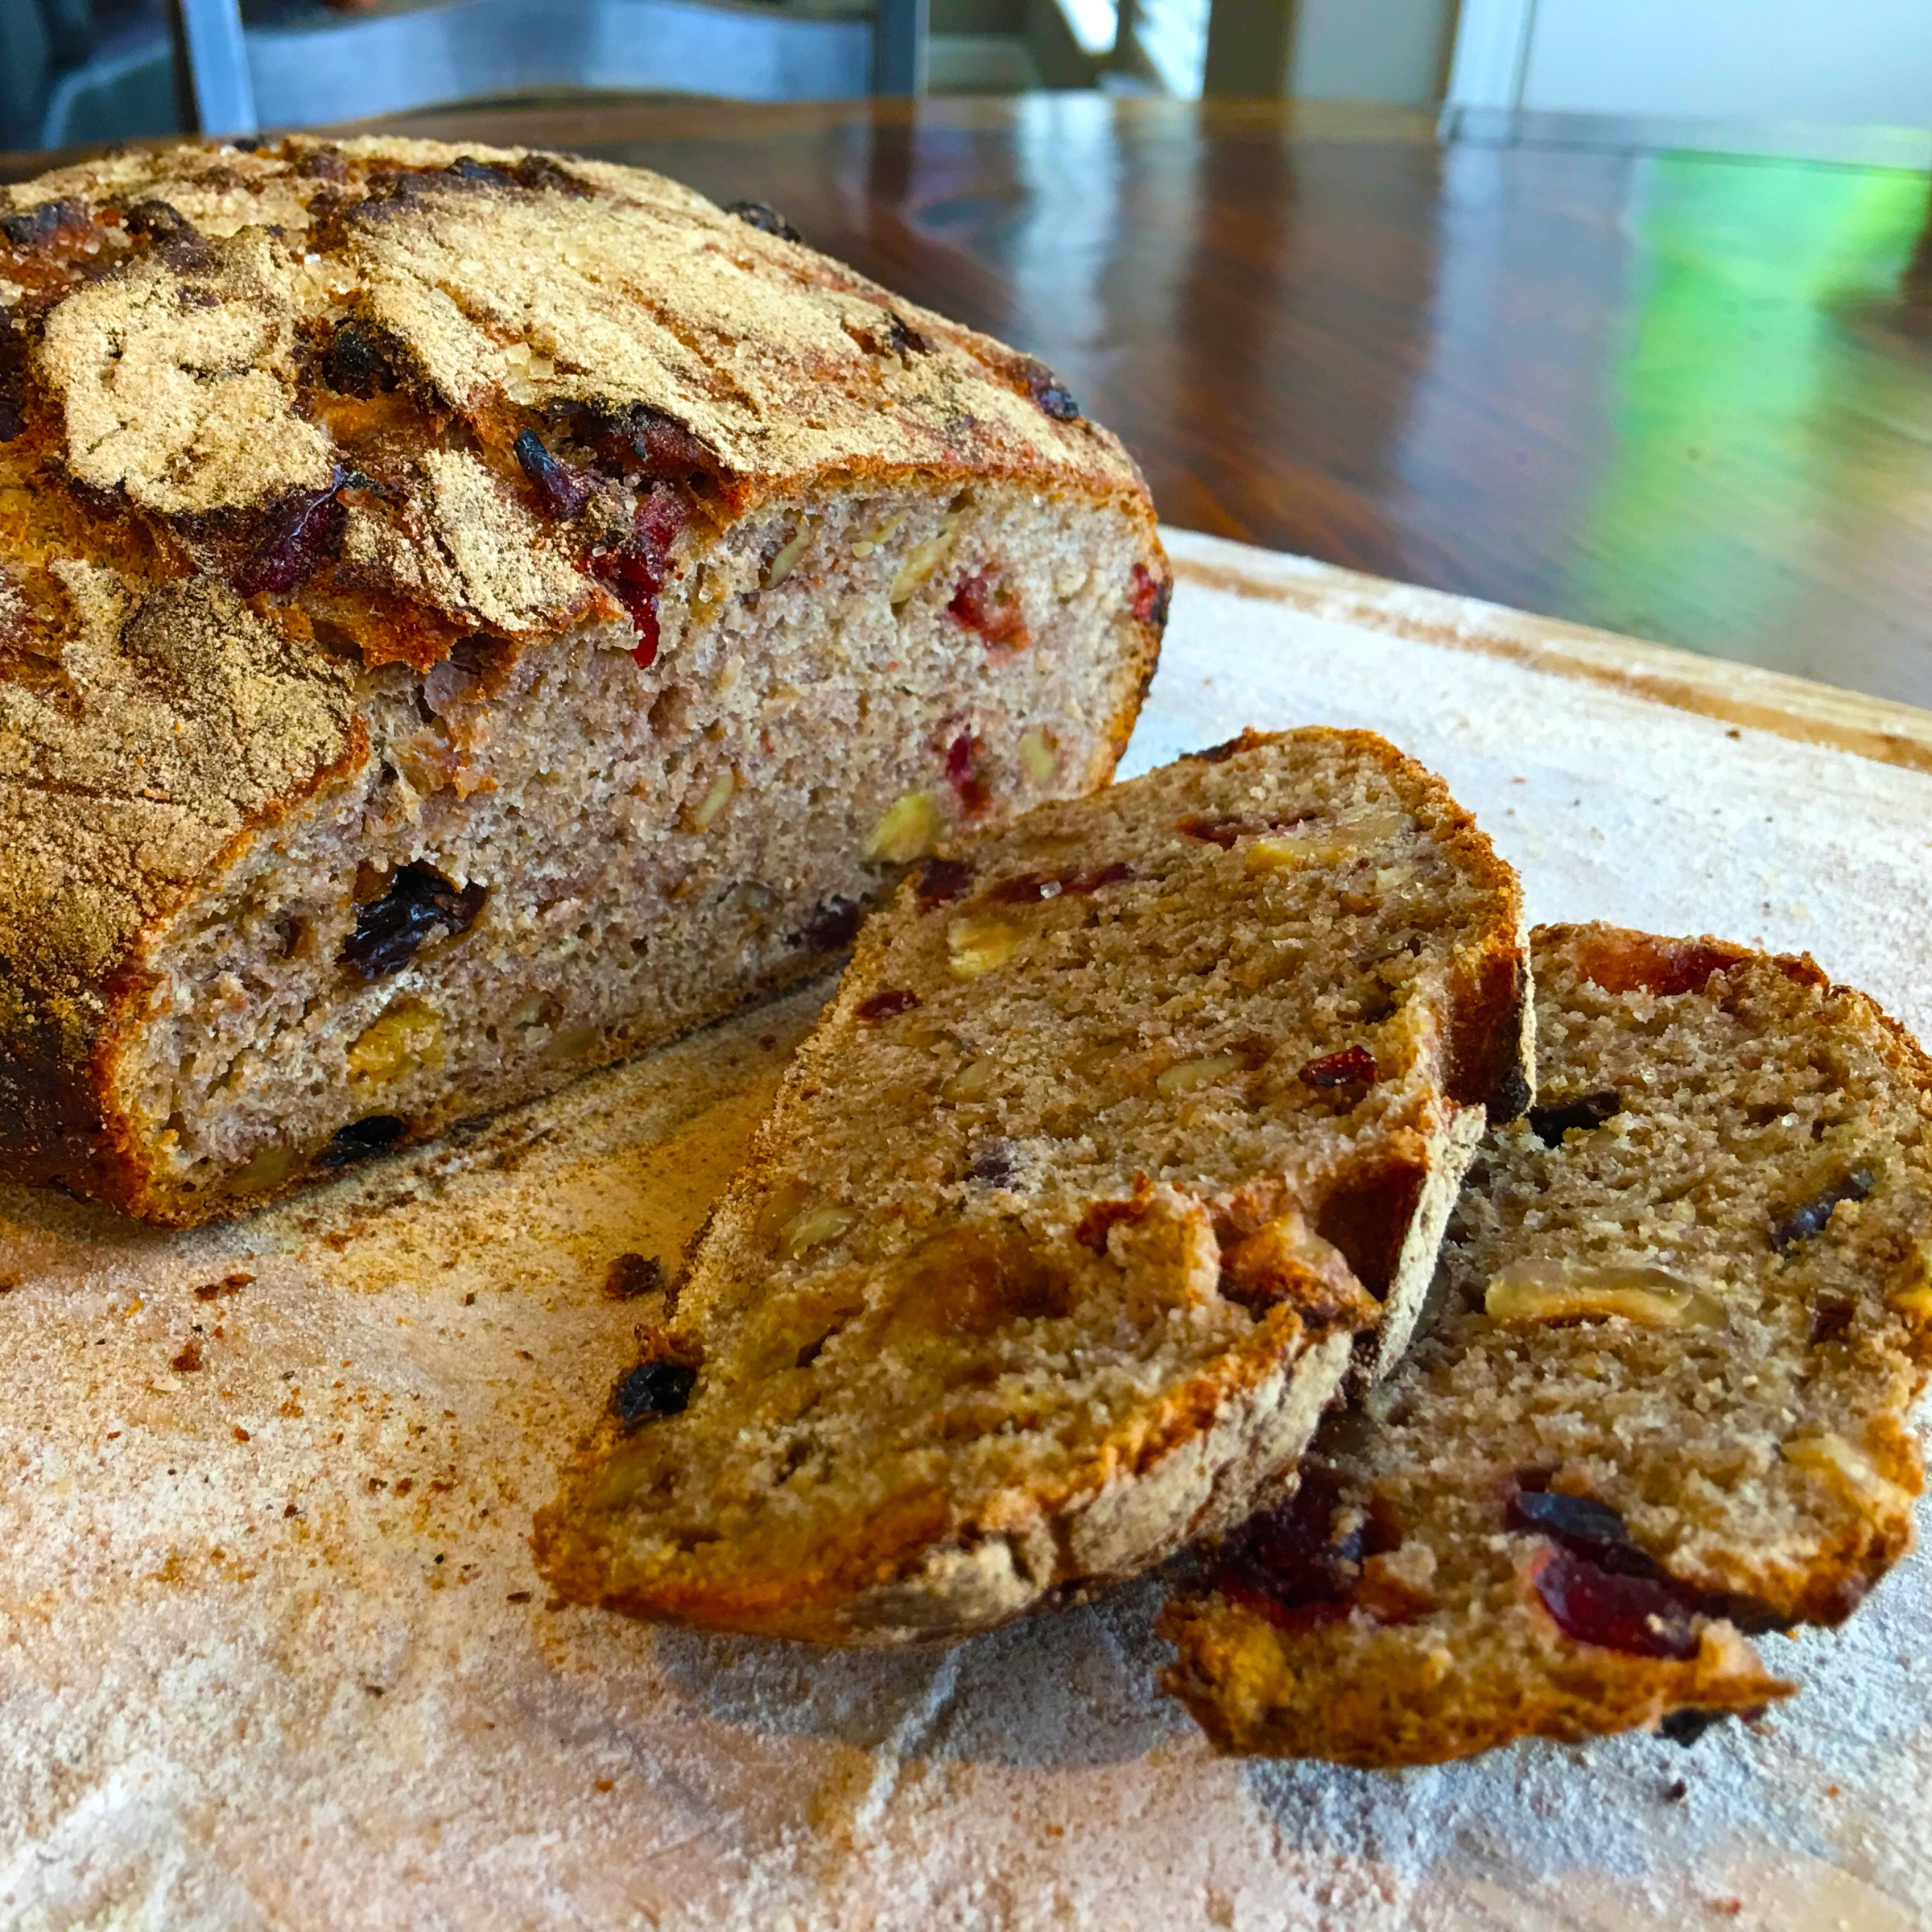 Cranberry raisin date and nut bread red star yeast butter or toasted with sliced banana paula nolan peoples choice winner of the 2016 strolling of the heifers great american bread recipe contest forumfinder Choice Image